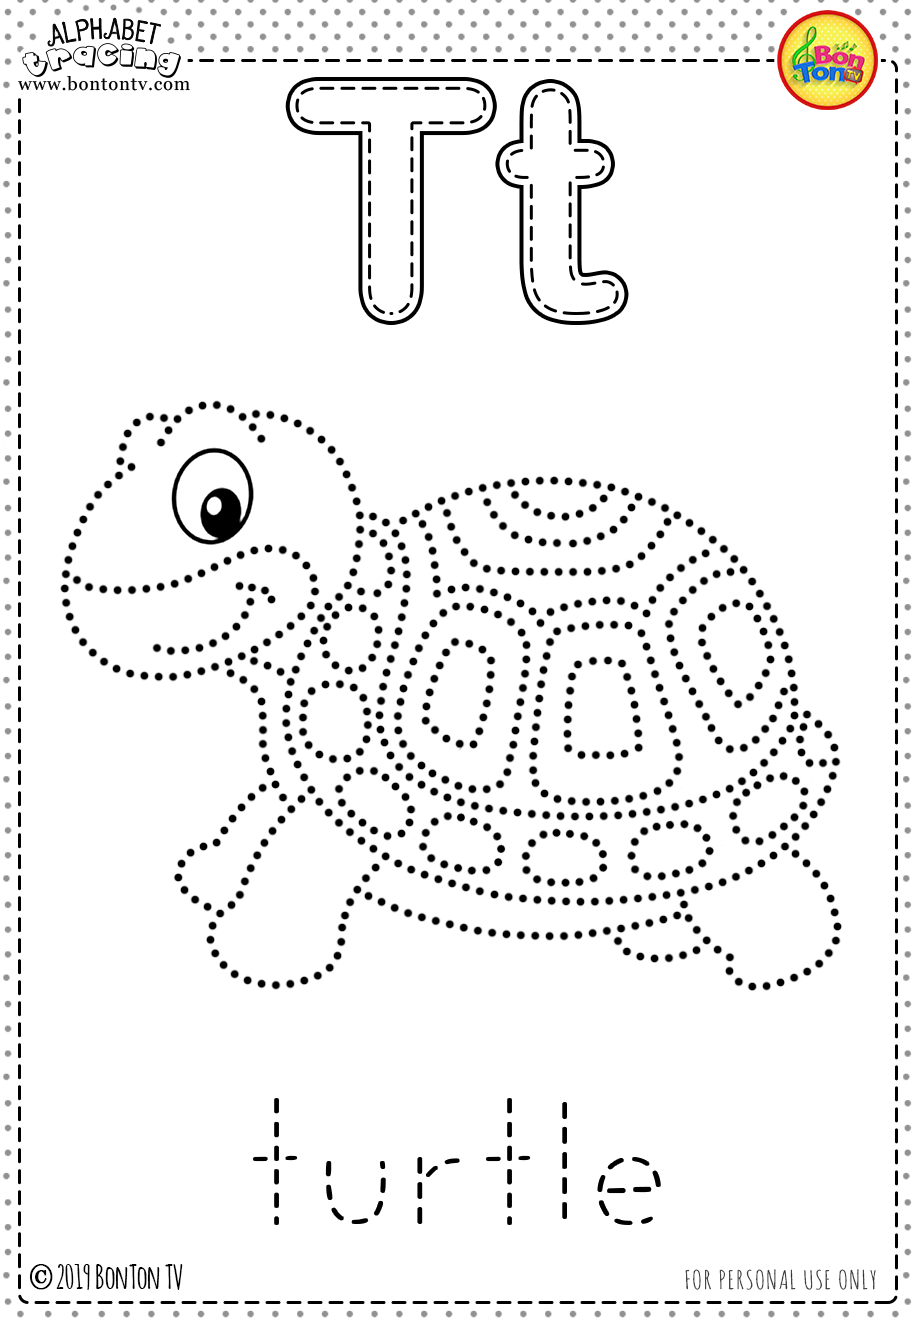 Free Preschool Printables - Alphabet Tracing And Coloring